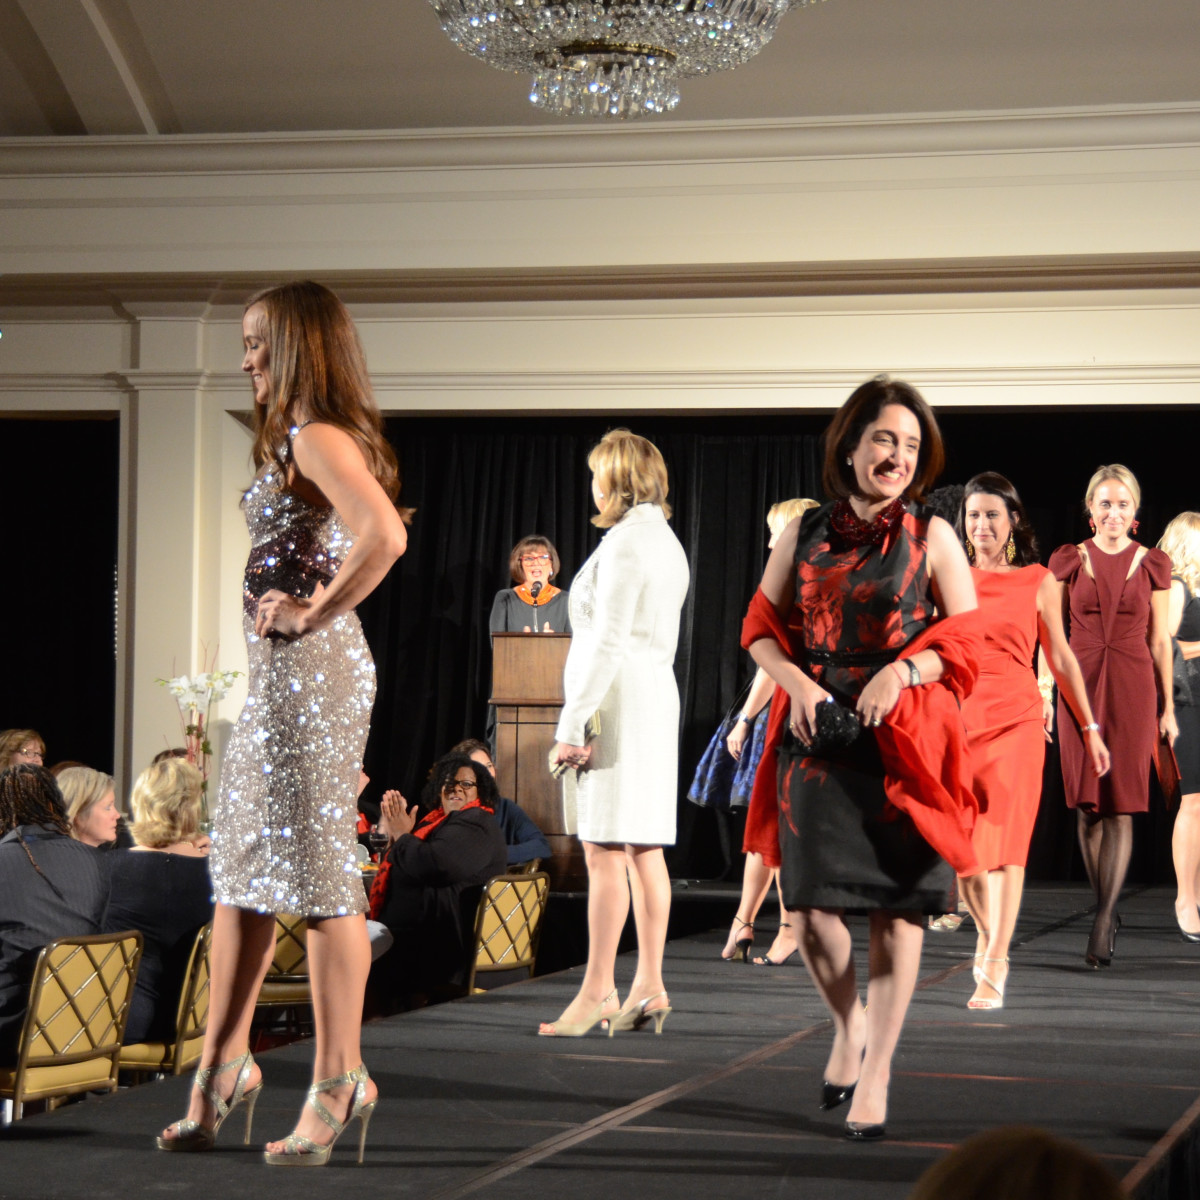 Houston, Dress for Success A Night Out Event, November 2015, models in the runway